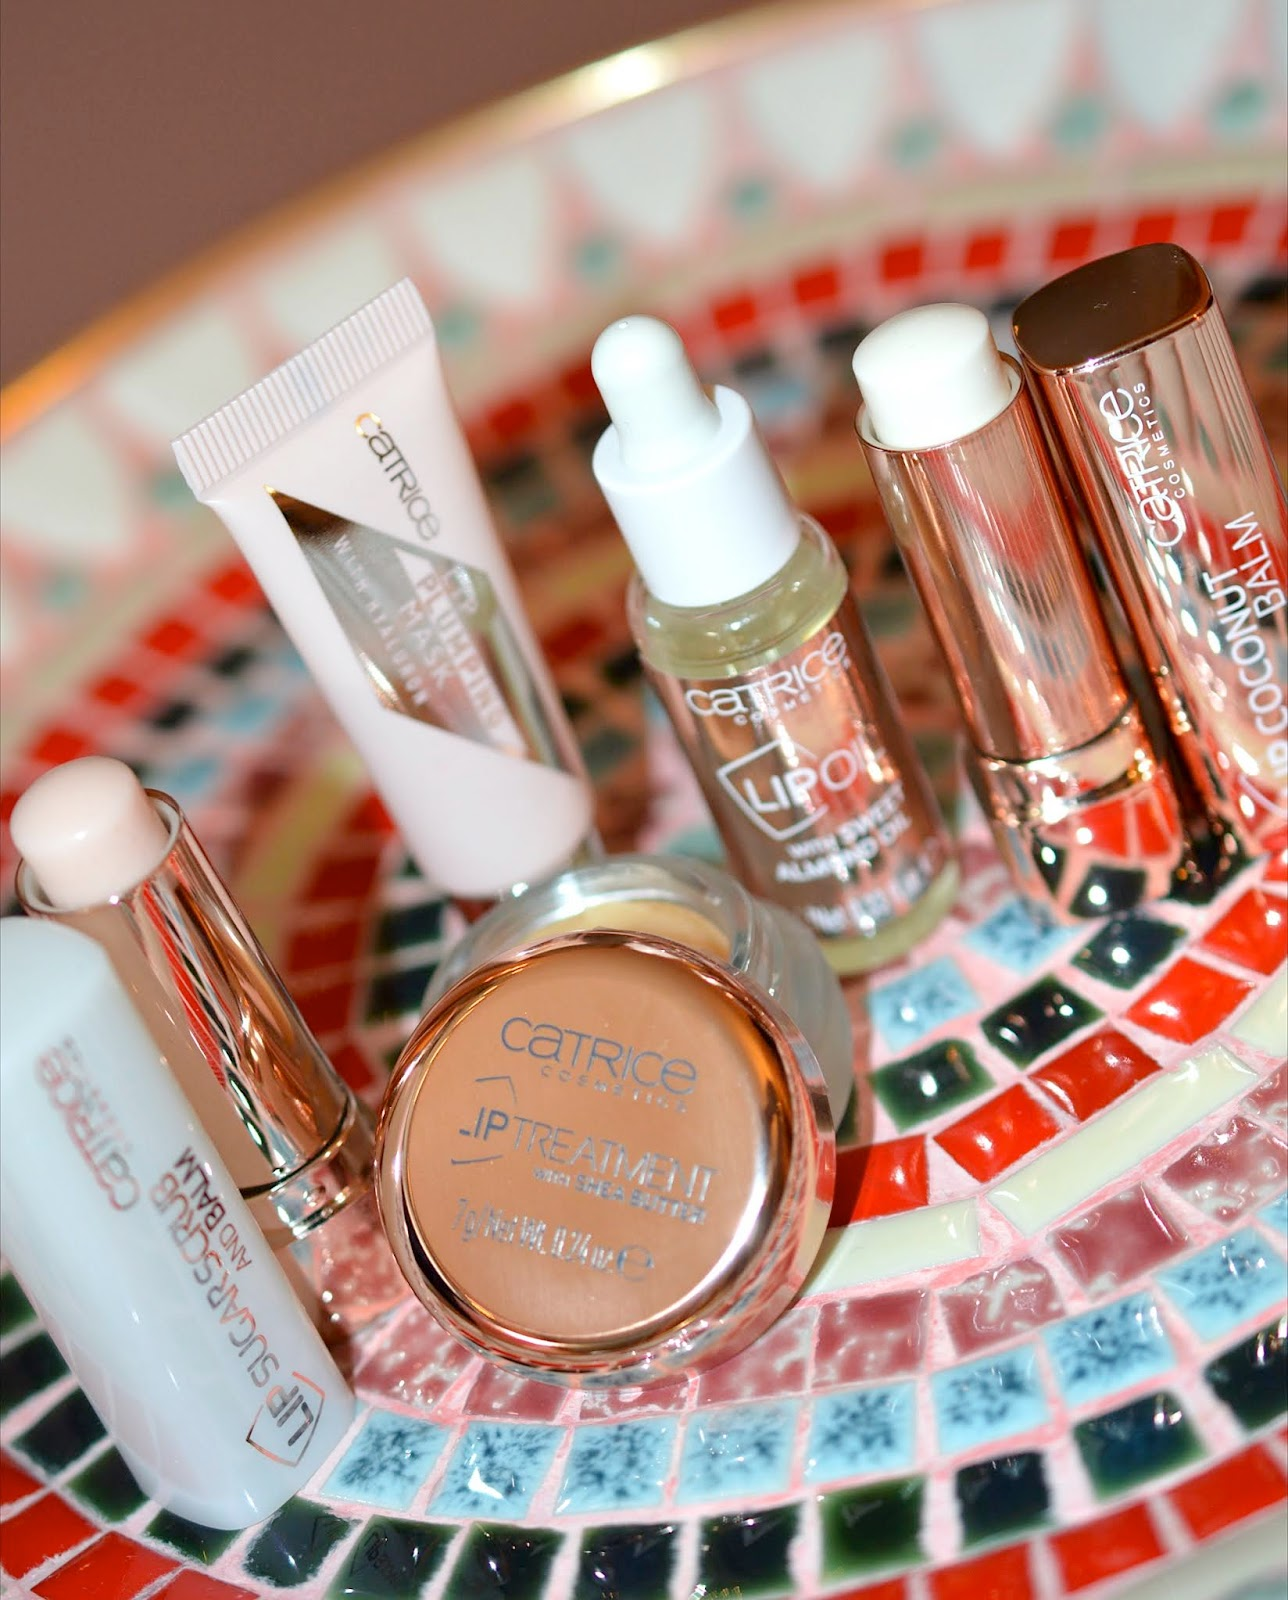 Catrice Canada Review